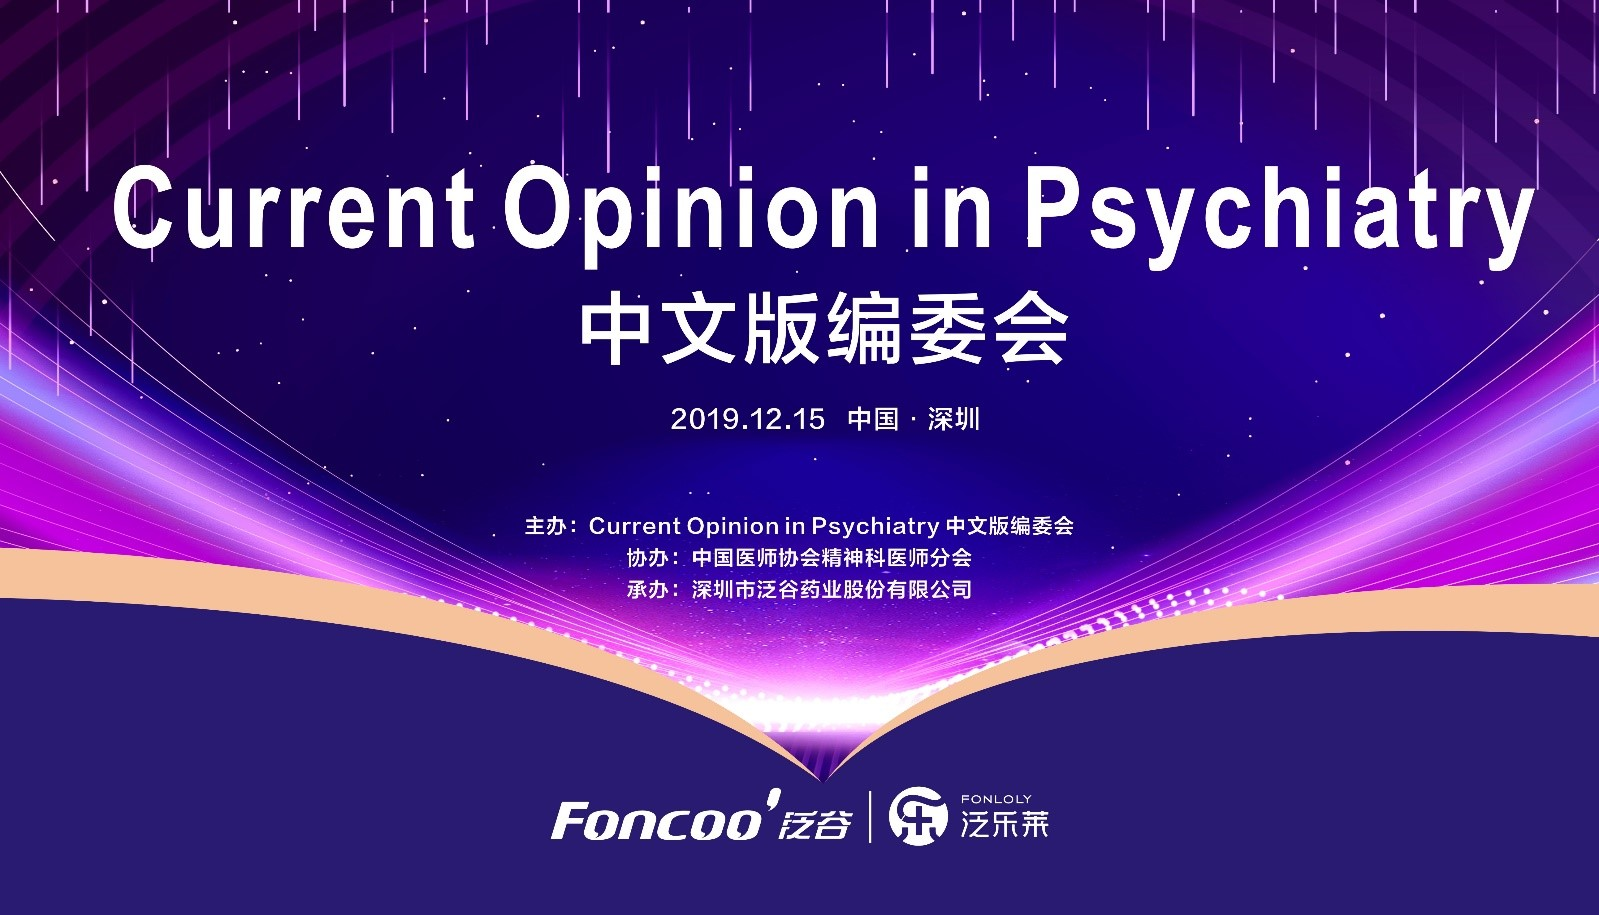 2019 Editorial Board of the Chinese Edition of Current Opinion in Psychiatry Held in Shenzhen